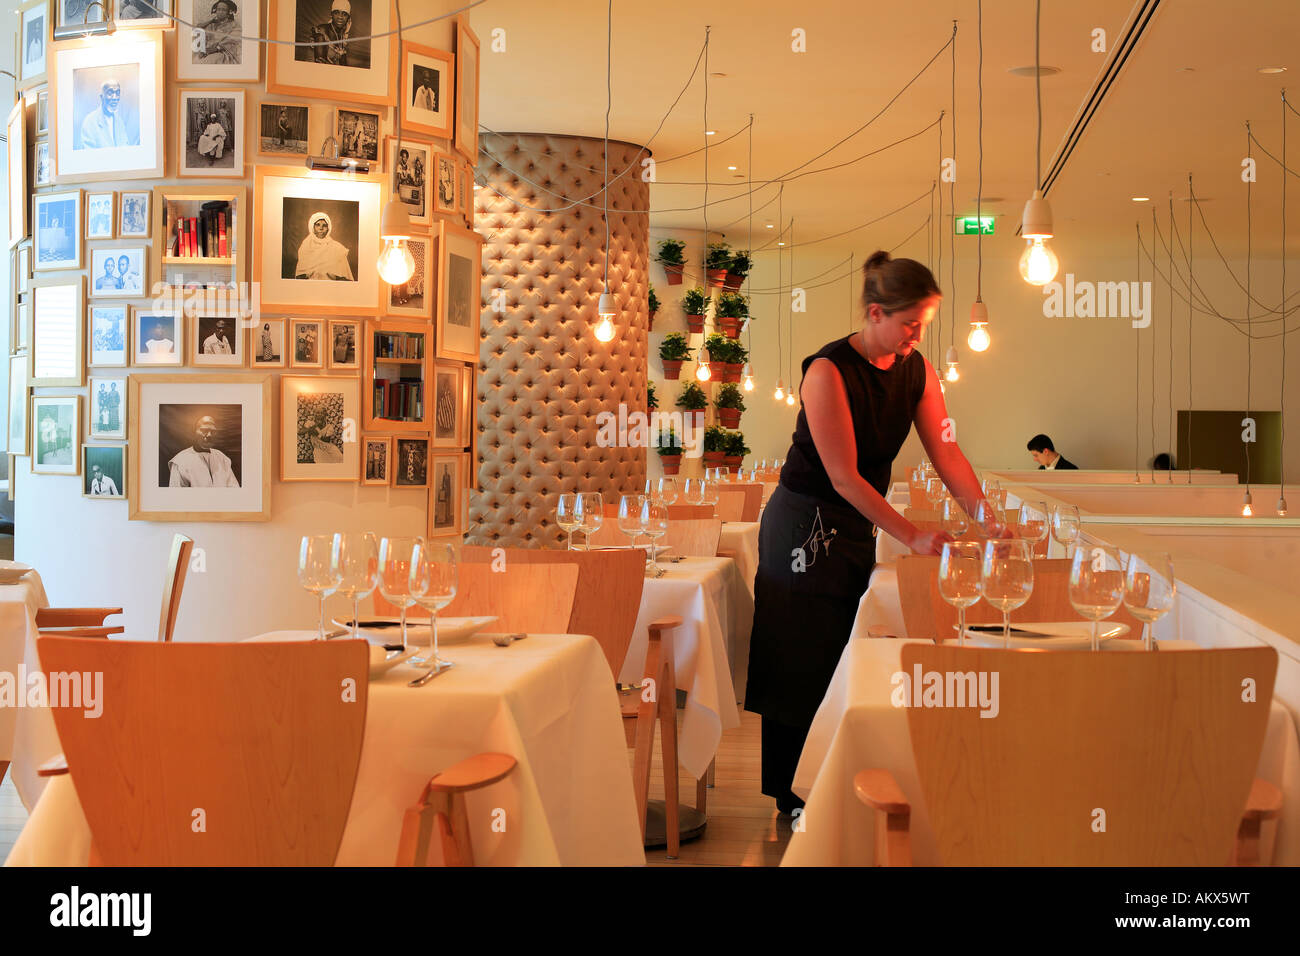 Home luxury romantic restaurant interior design of asia de cuba at - Stock Photo United Kingdom London Waitress In Asia De Cuba Restaurant Of St Martins Lane Hotel 5 Star Hotel Decorated By Philippe Starck